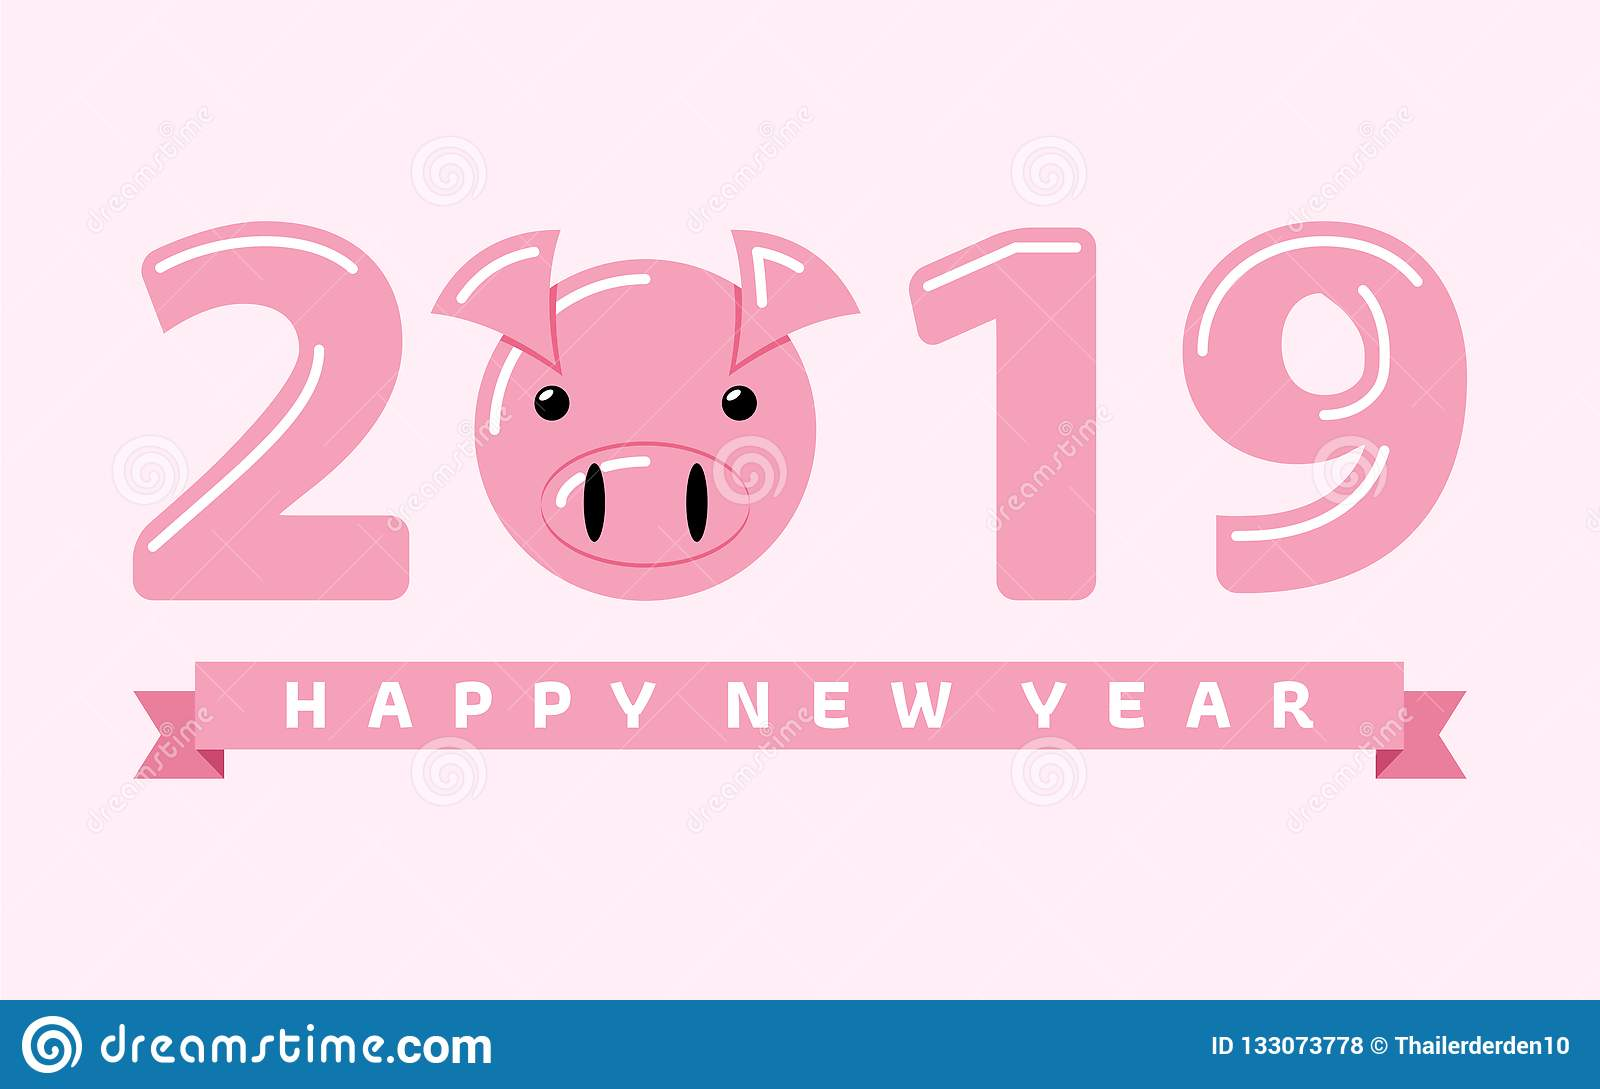 Happy New Year 2019 Year Of The Pig Stock Vector - Illustration of